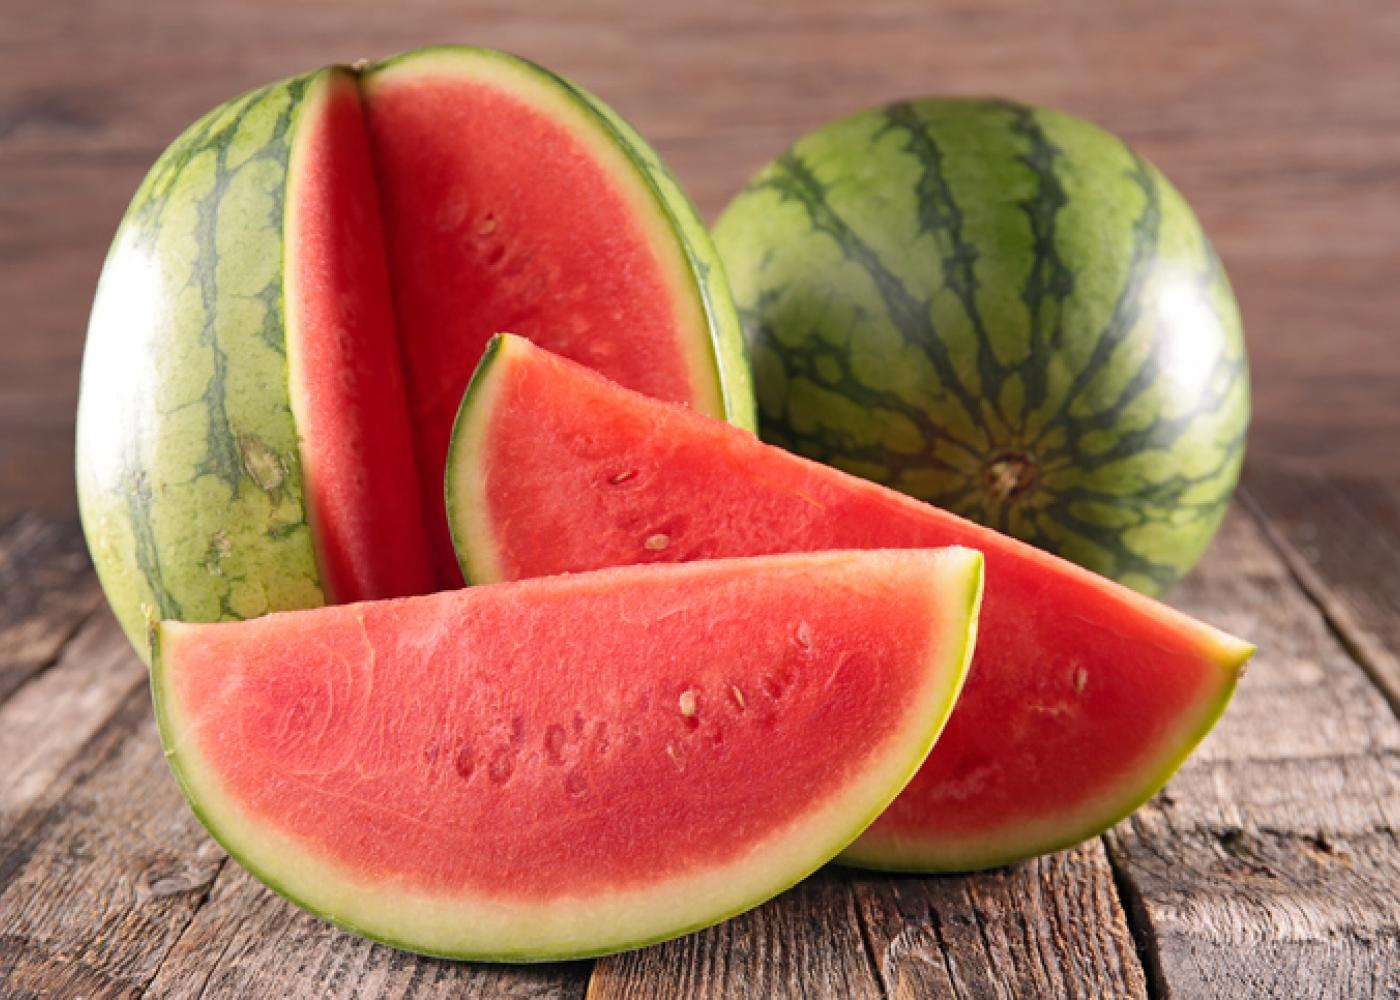 Eating watermelon for losing weight